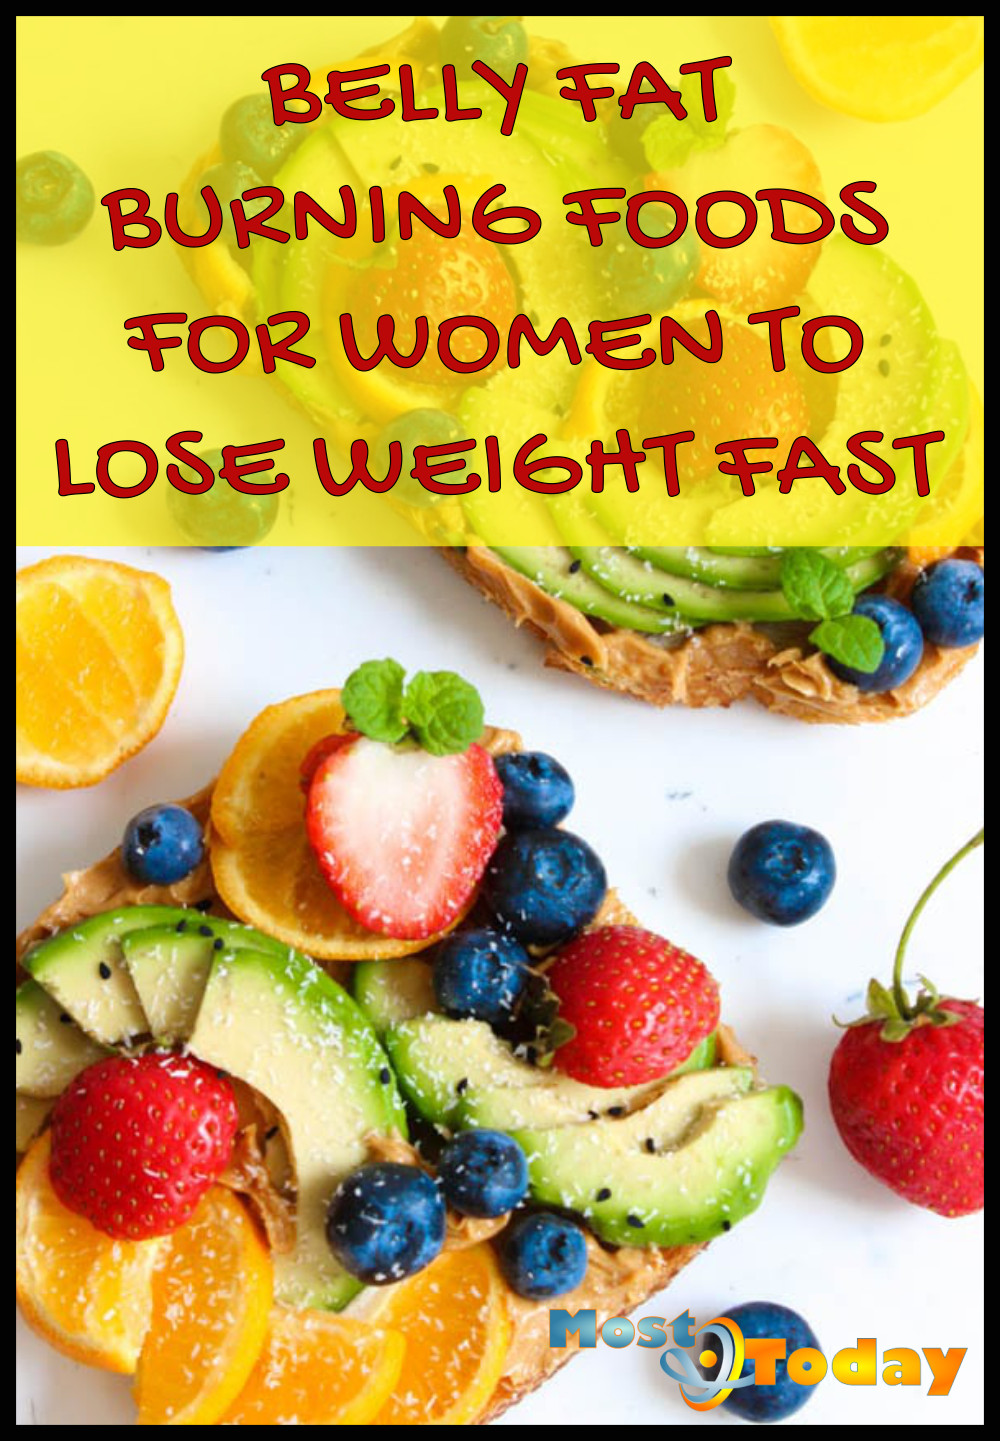 Fat Burning Foods Losing Weight 10 Pounds  BELLY FAT BURNING FOODS FOR WOMEN TO LOSE WEIGHT FAST